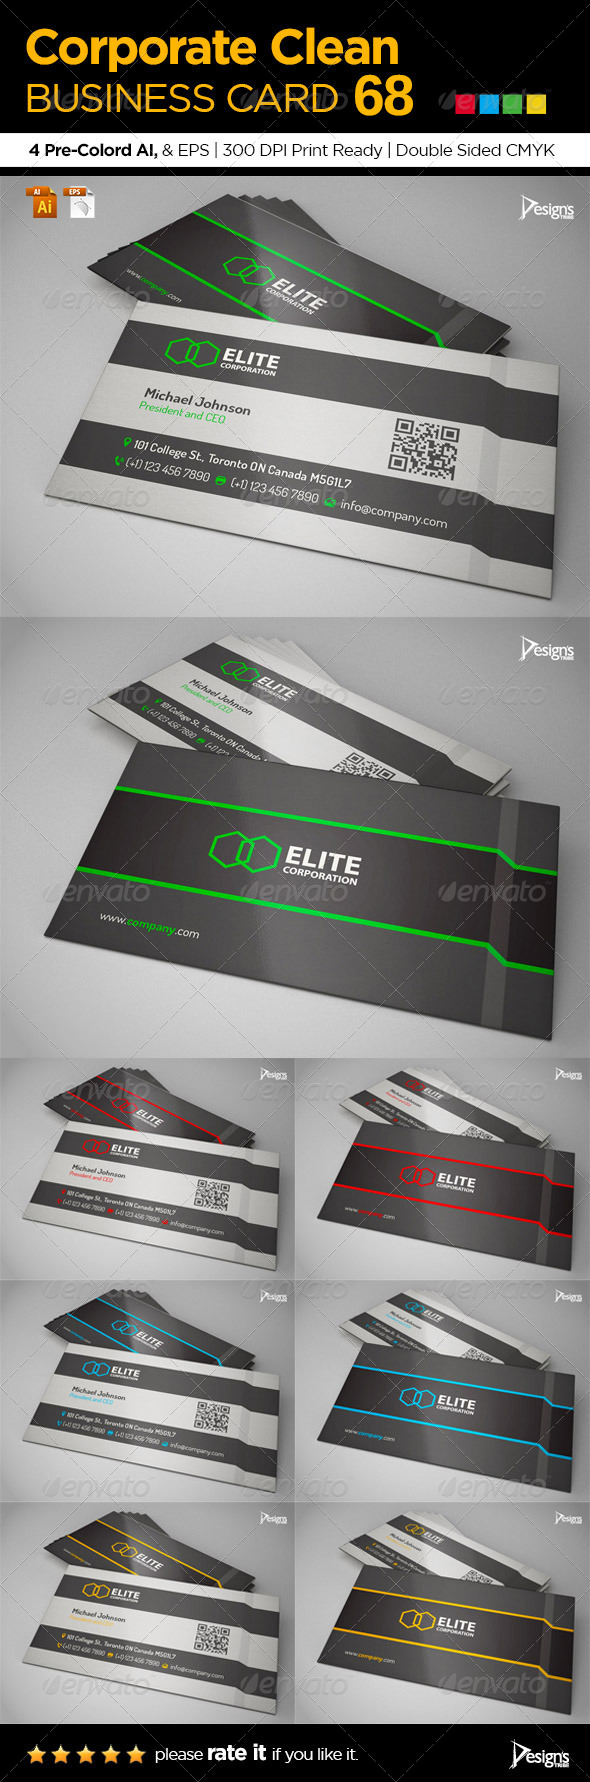 Corporate Clean Business Card 68 - Business Cards Print Templates